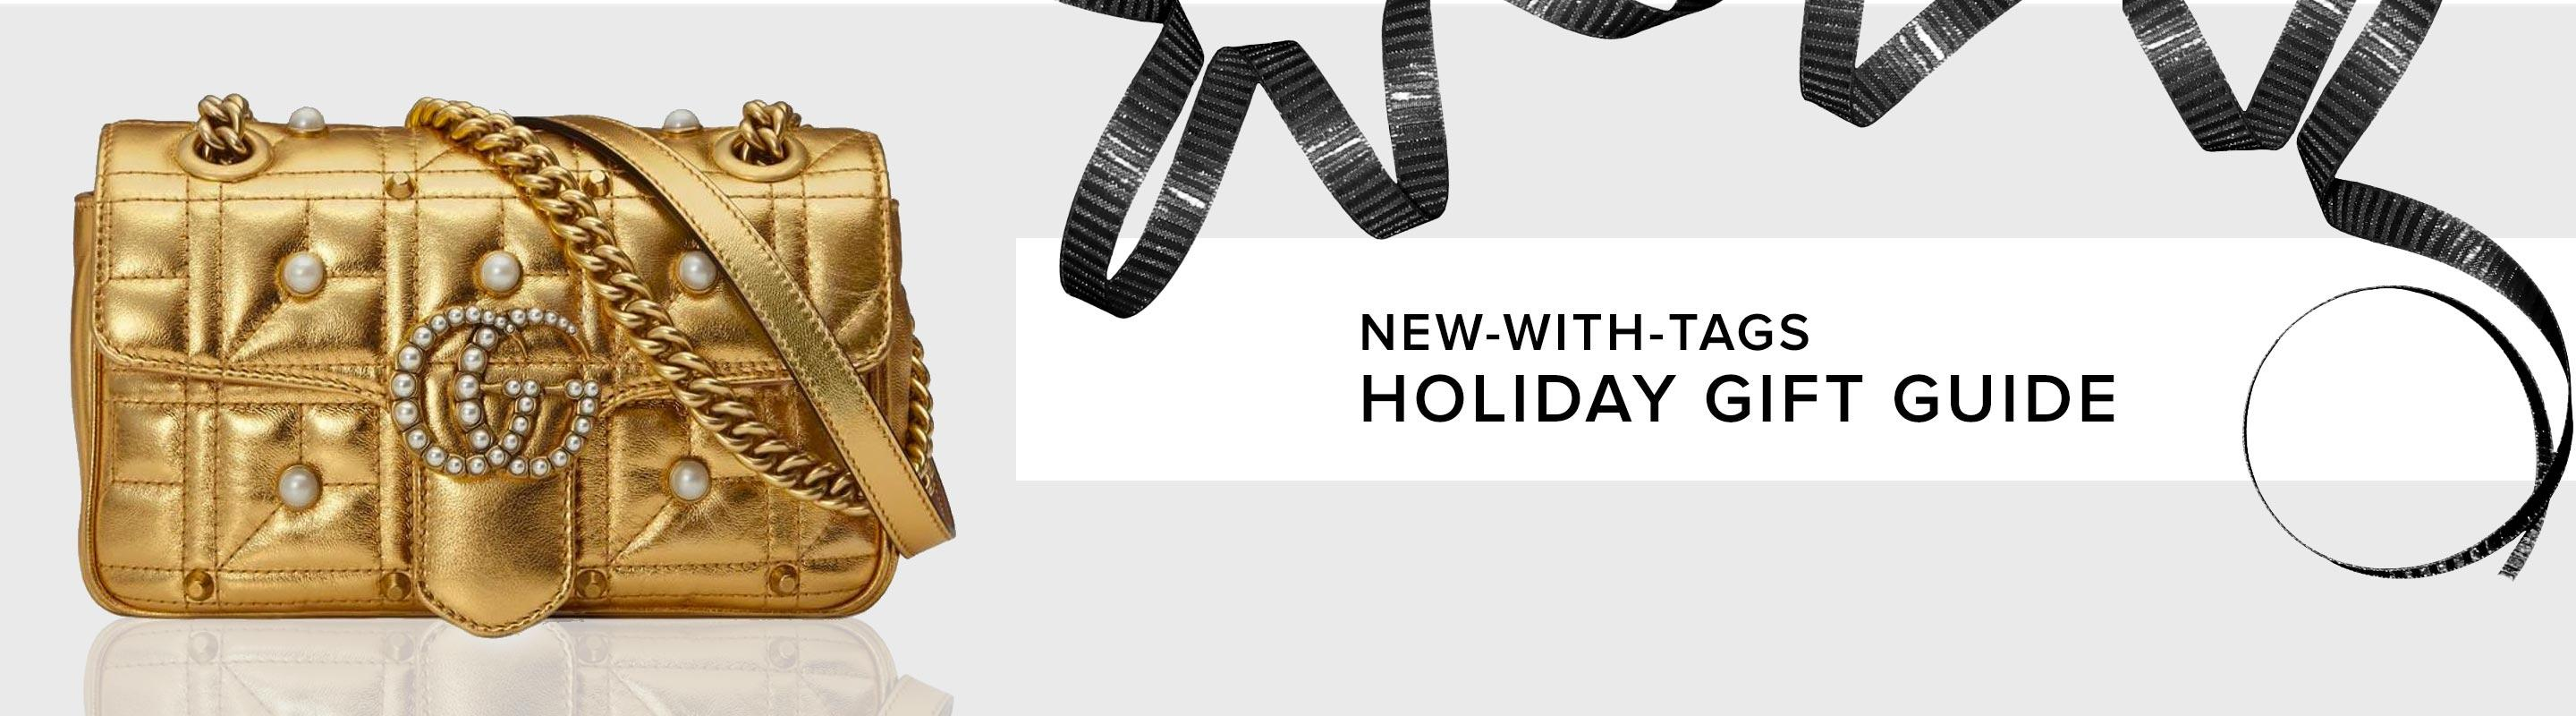 New-With-Tags Holiday Gift Guide